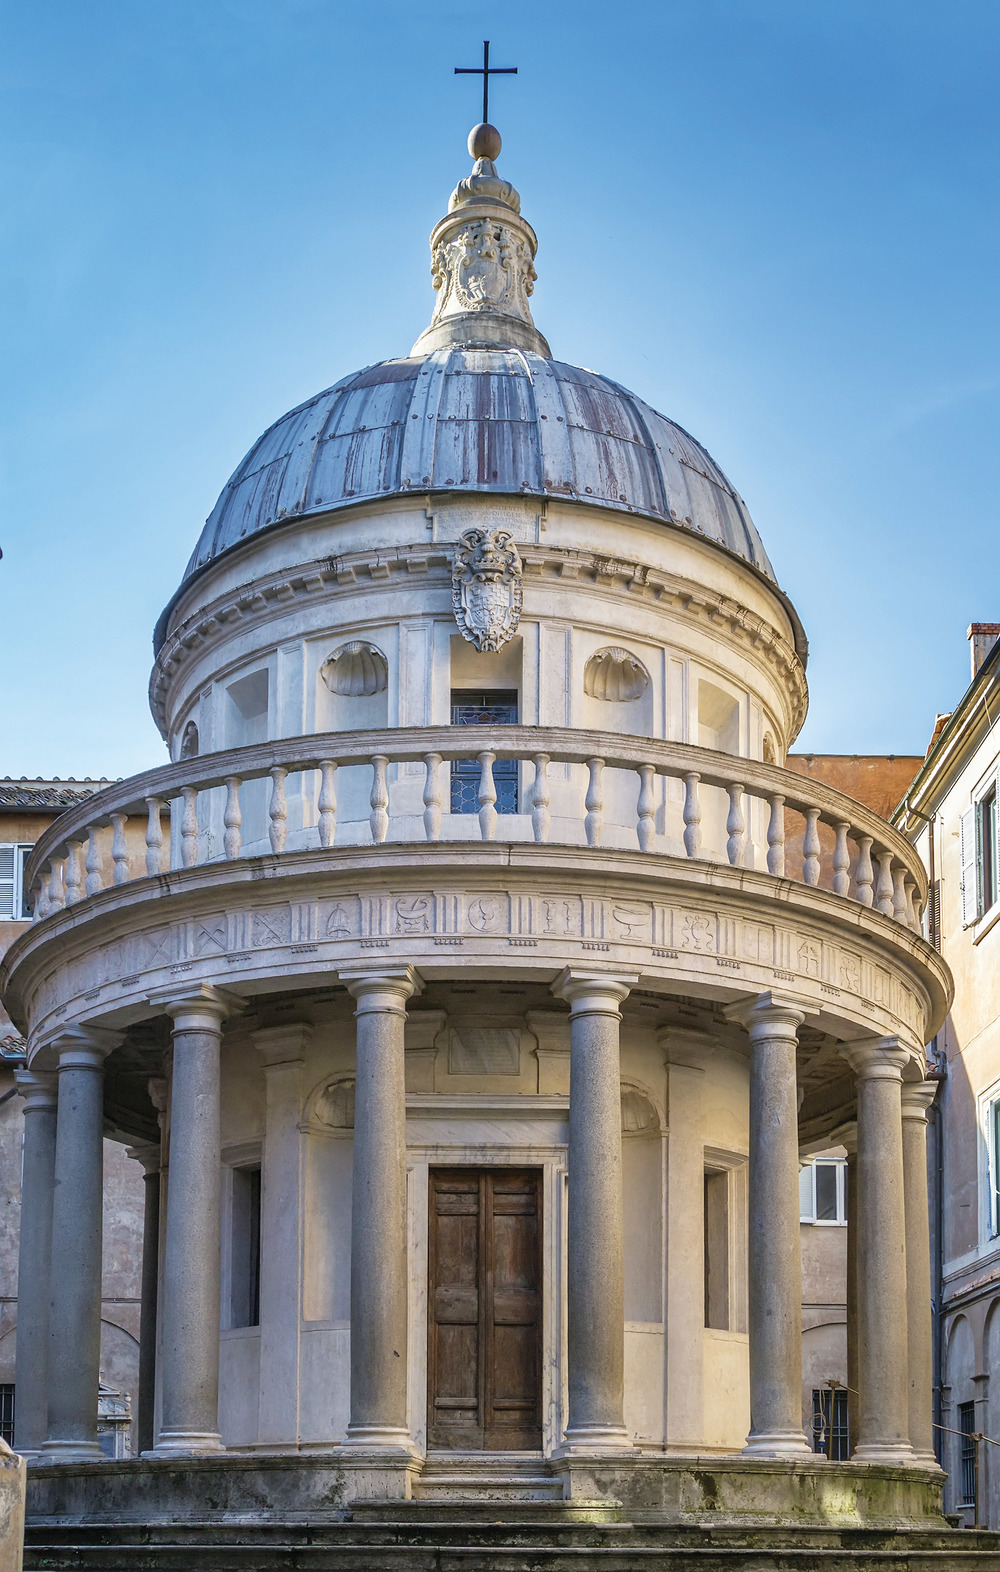 In the courtyard of San Pietro in Montorio in Rome, the Tempietto is an architectural jewel from the Renaissance that defines perfect proportion.(Borisb17 / Shutterstock.com)